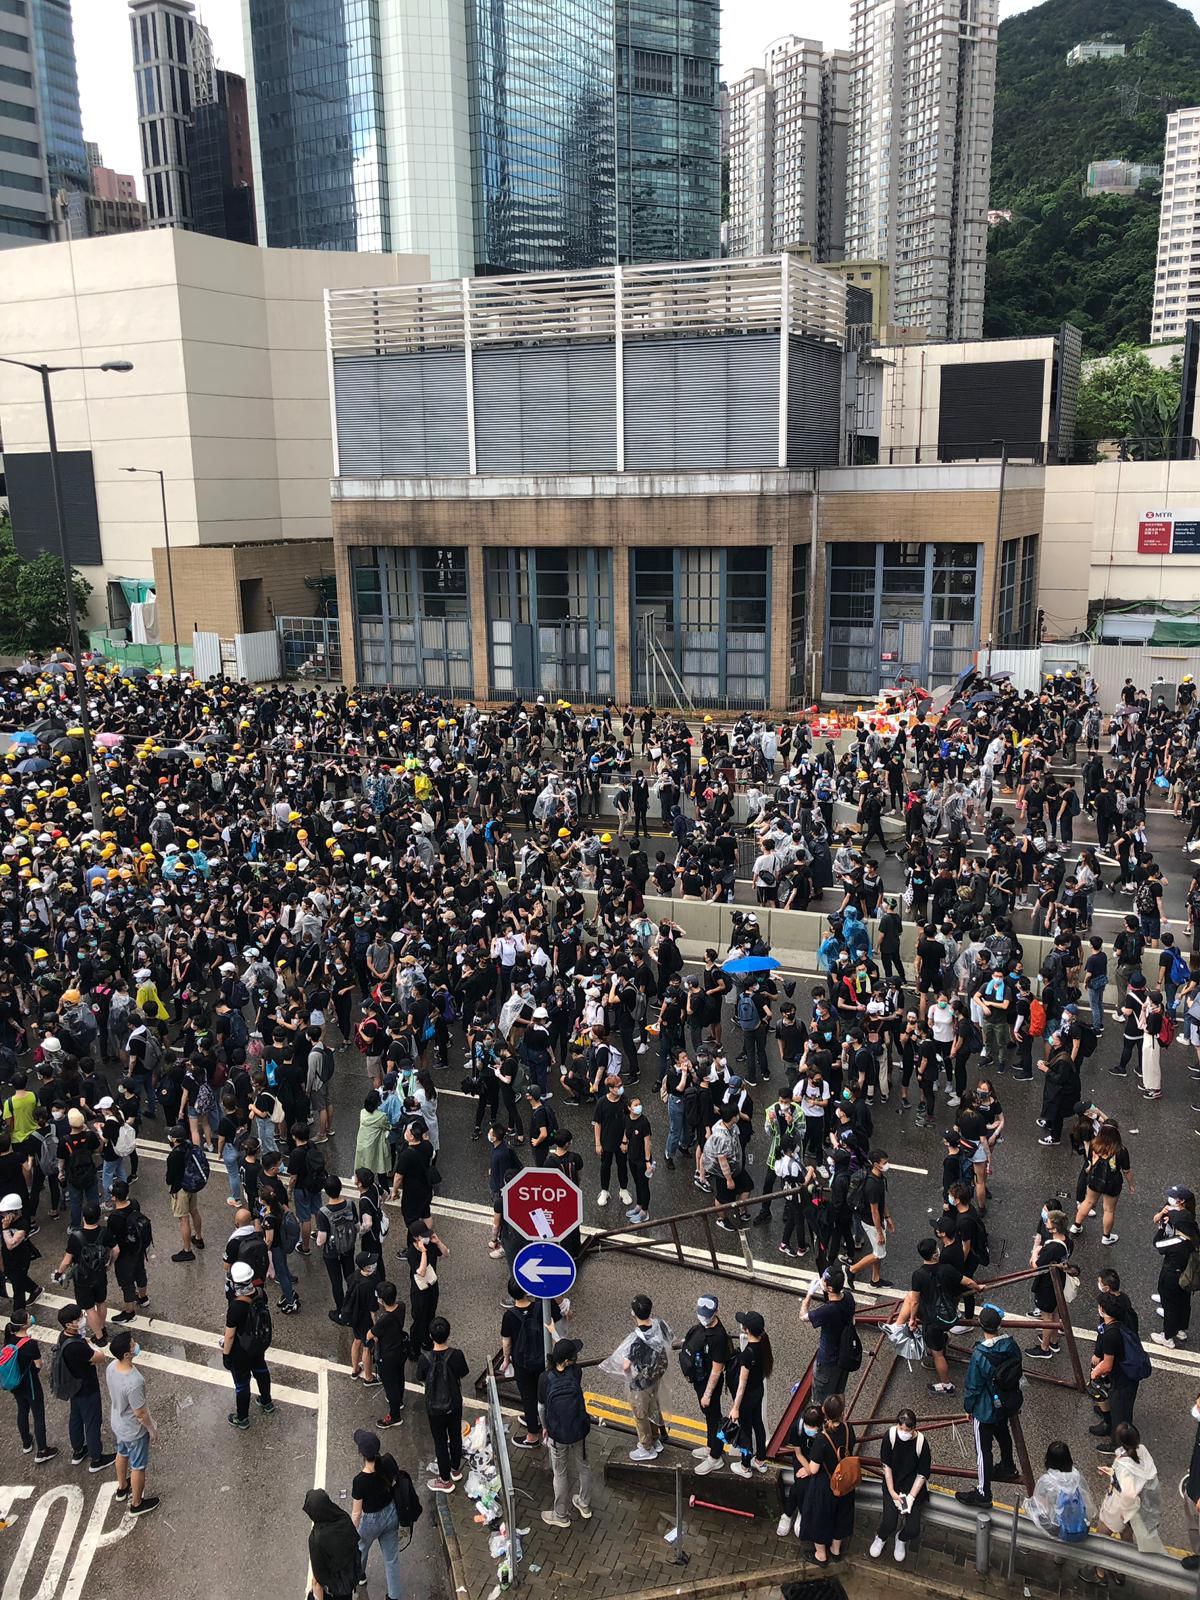 Protesters gather outside government headquarters in Admiralty.